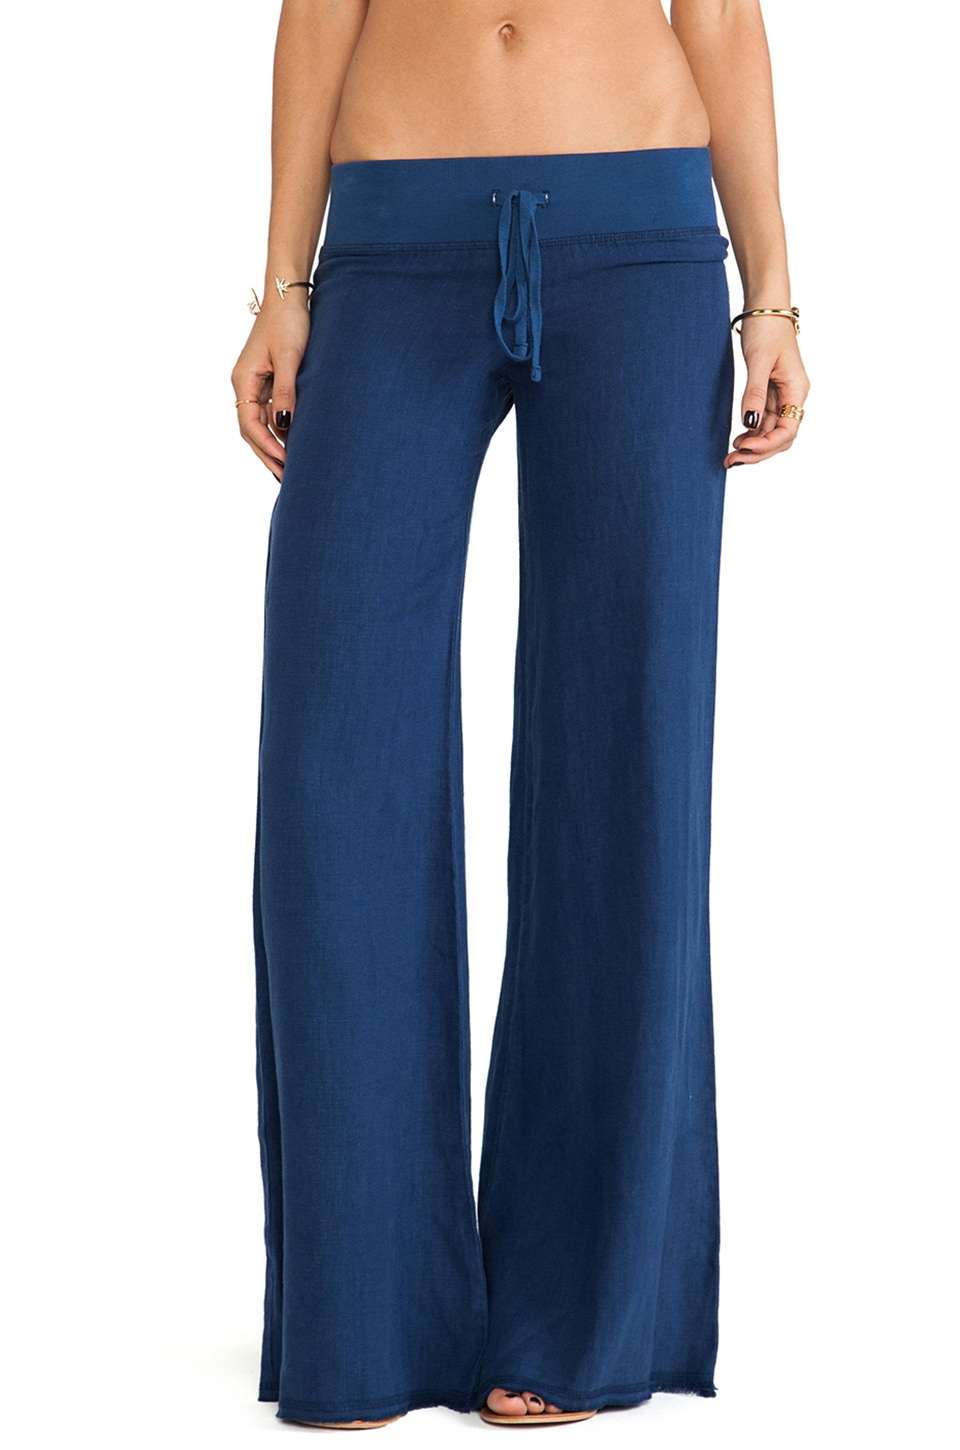 krisa Wide Leg Pant in Navy